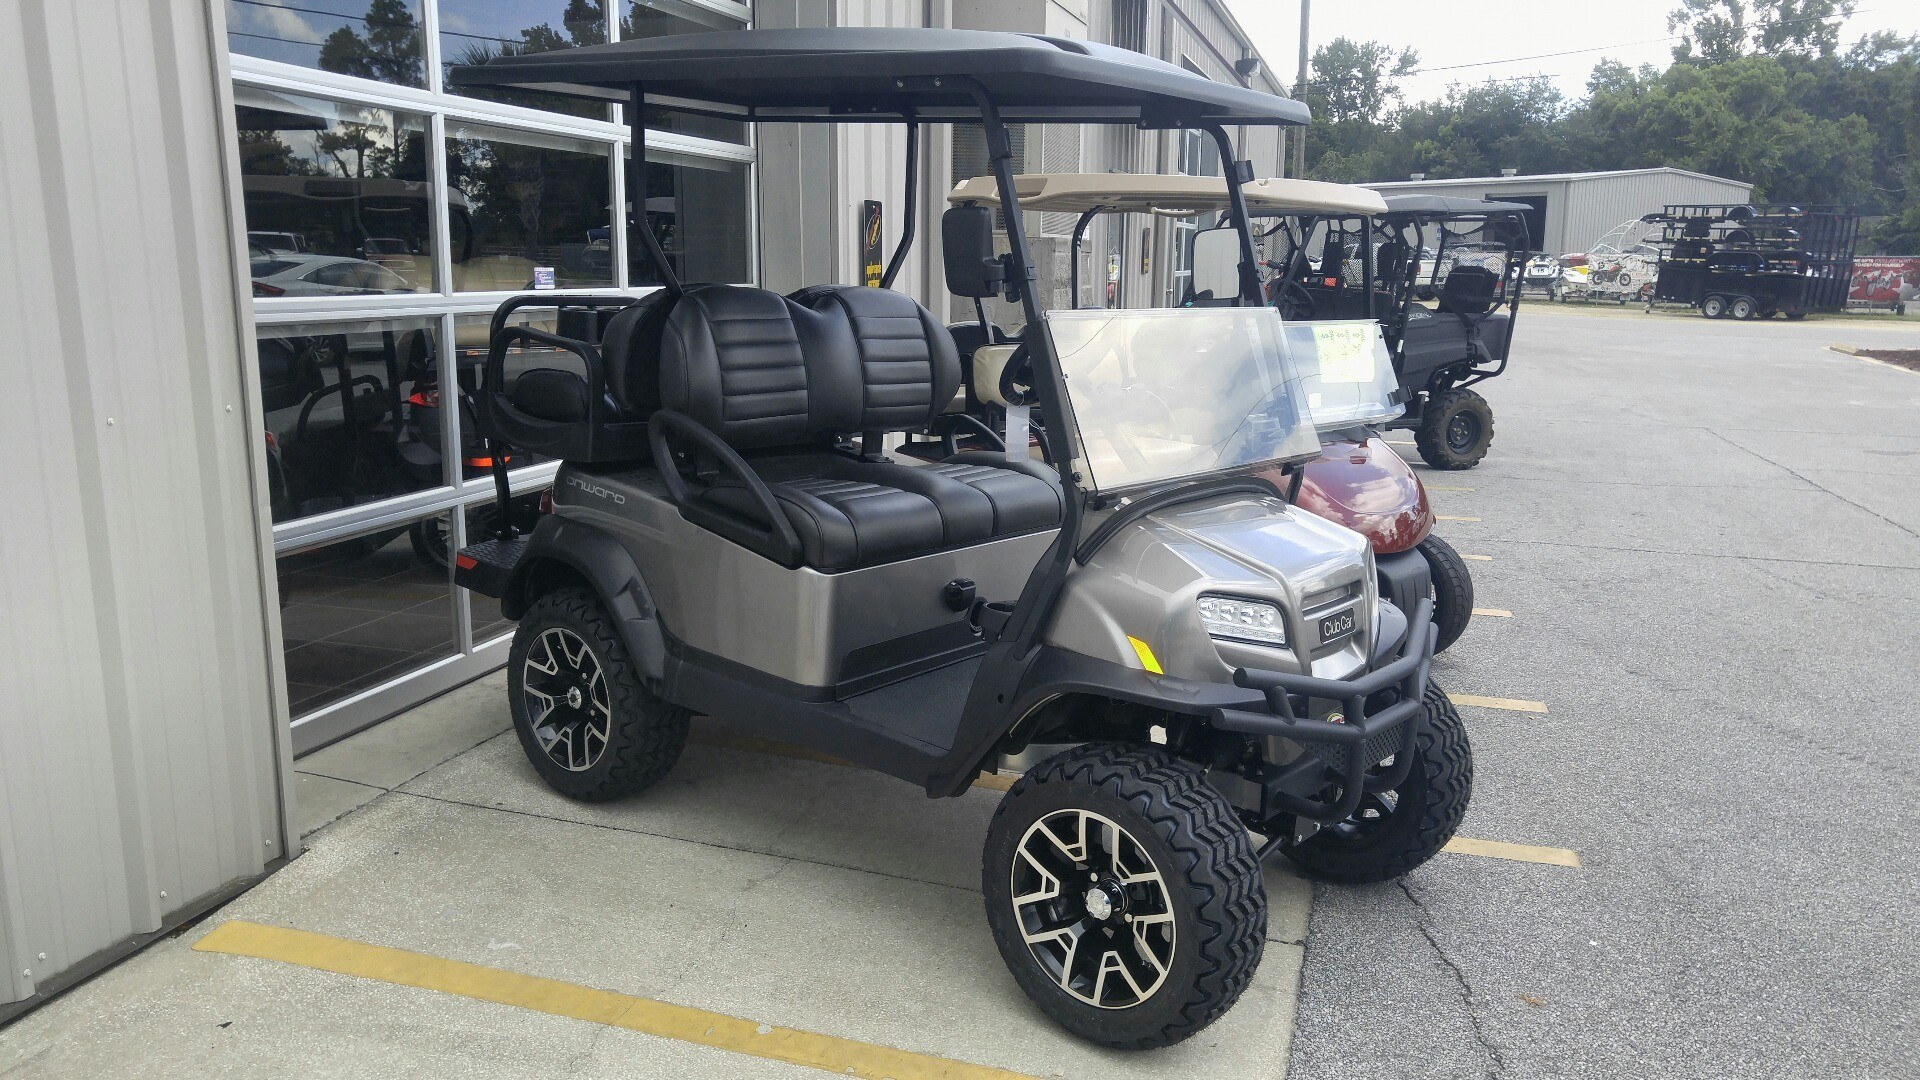 New 2019 Club Car Onward Lifted 4 Penger Electric Golf Carts ... Golf Cart Batteries Panama City Florida on daytona beach golf carts, ez go golf carts, florida golf carts, old golf carts, fargo golf carts, destin golf carts, sayulita golf carts, corpus christi golf carts, houston golf carts, myrtle beach golf carts, georgia golf carts, isla mujeres golf carts, key west golf carts,